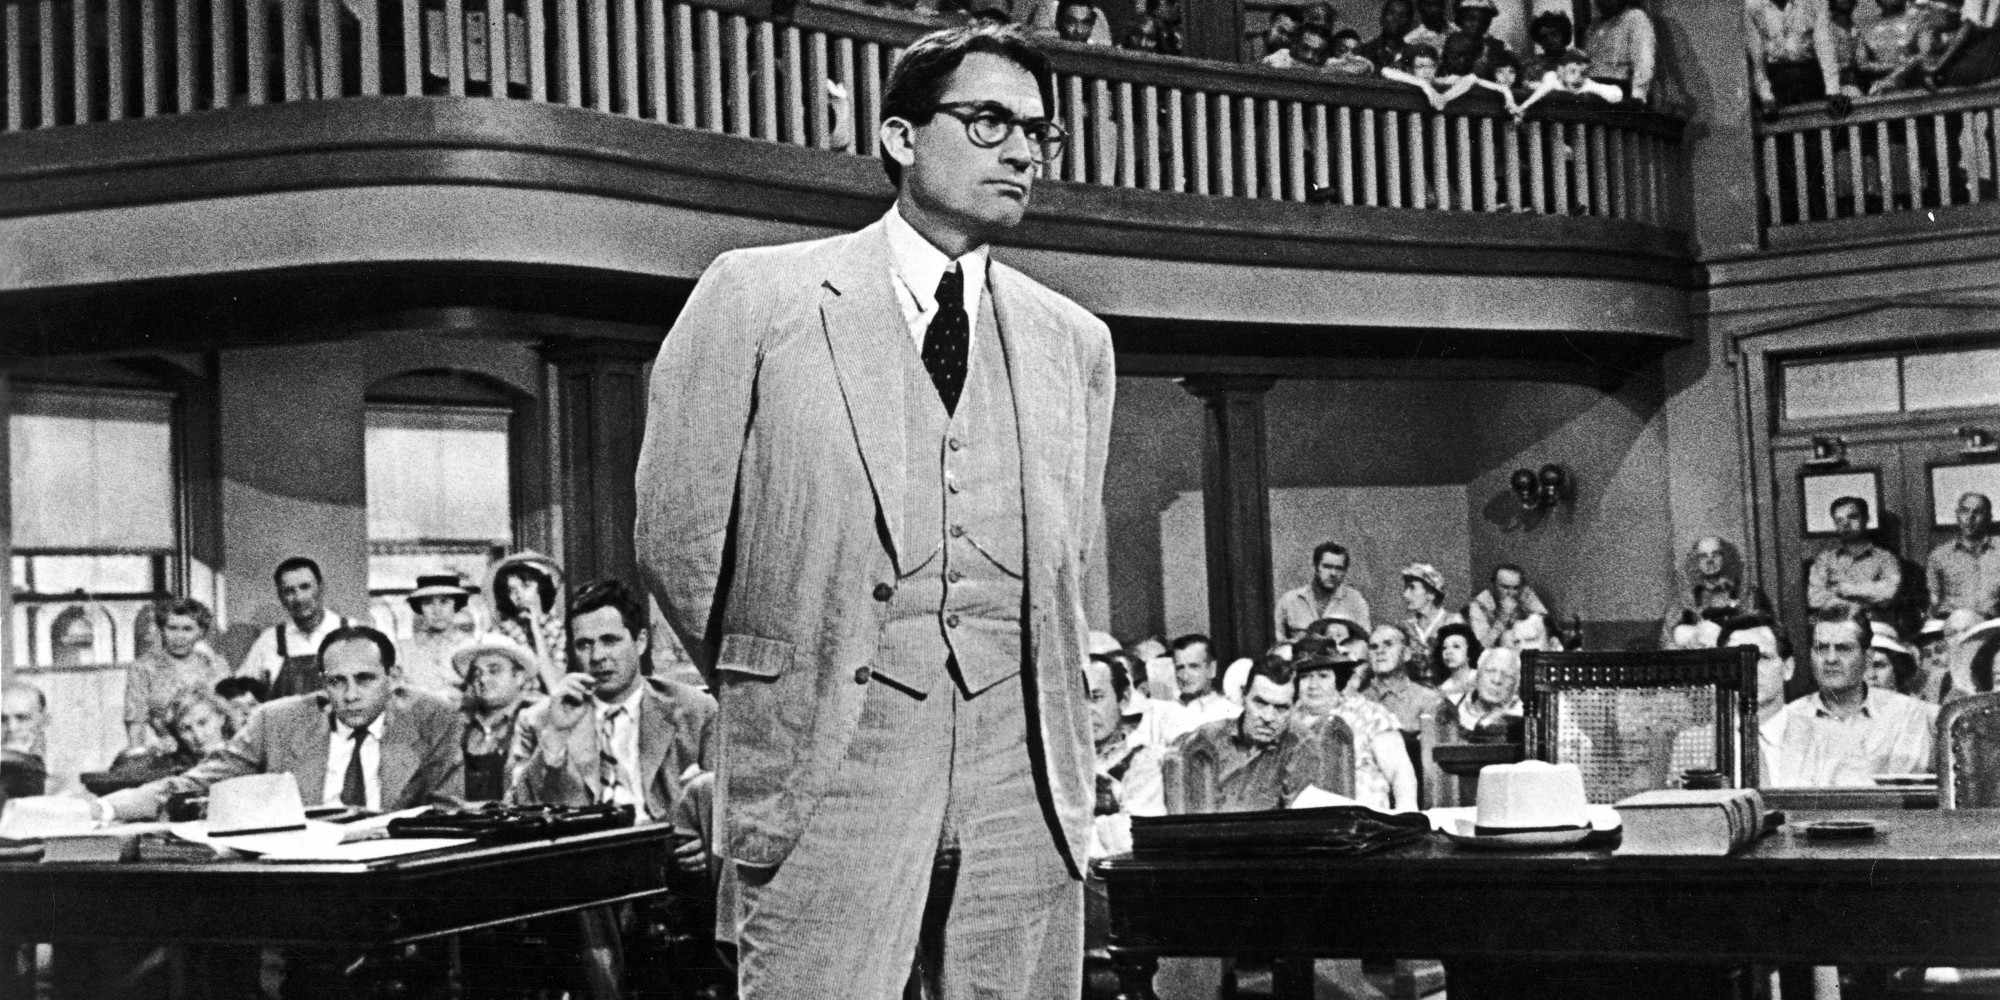 To kill a mockingbird atticus character essay